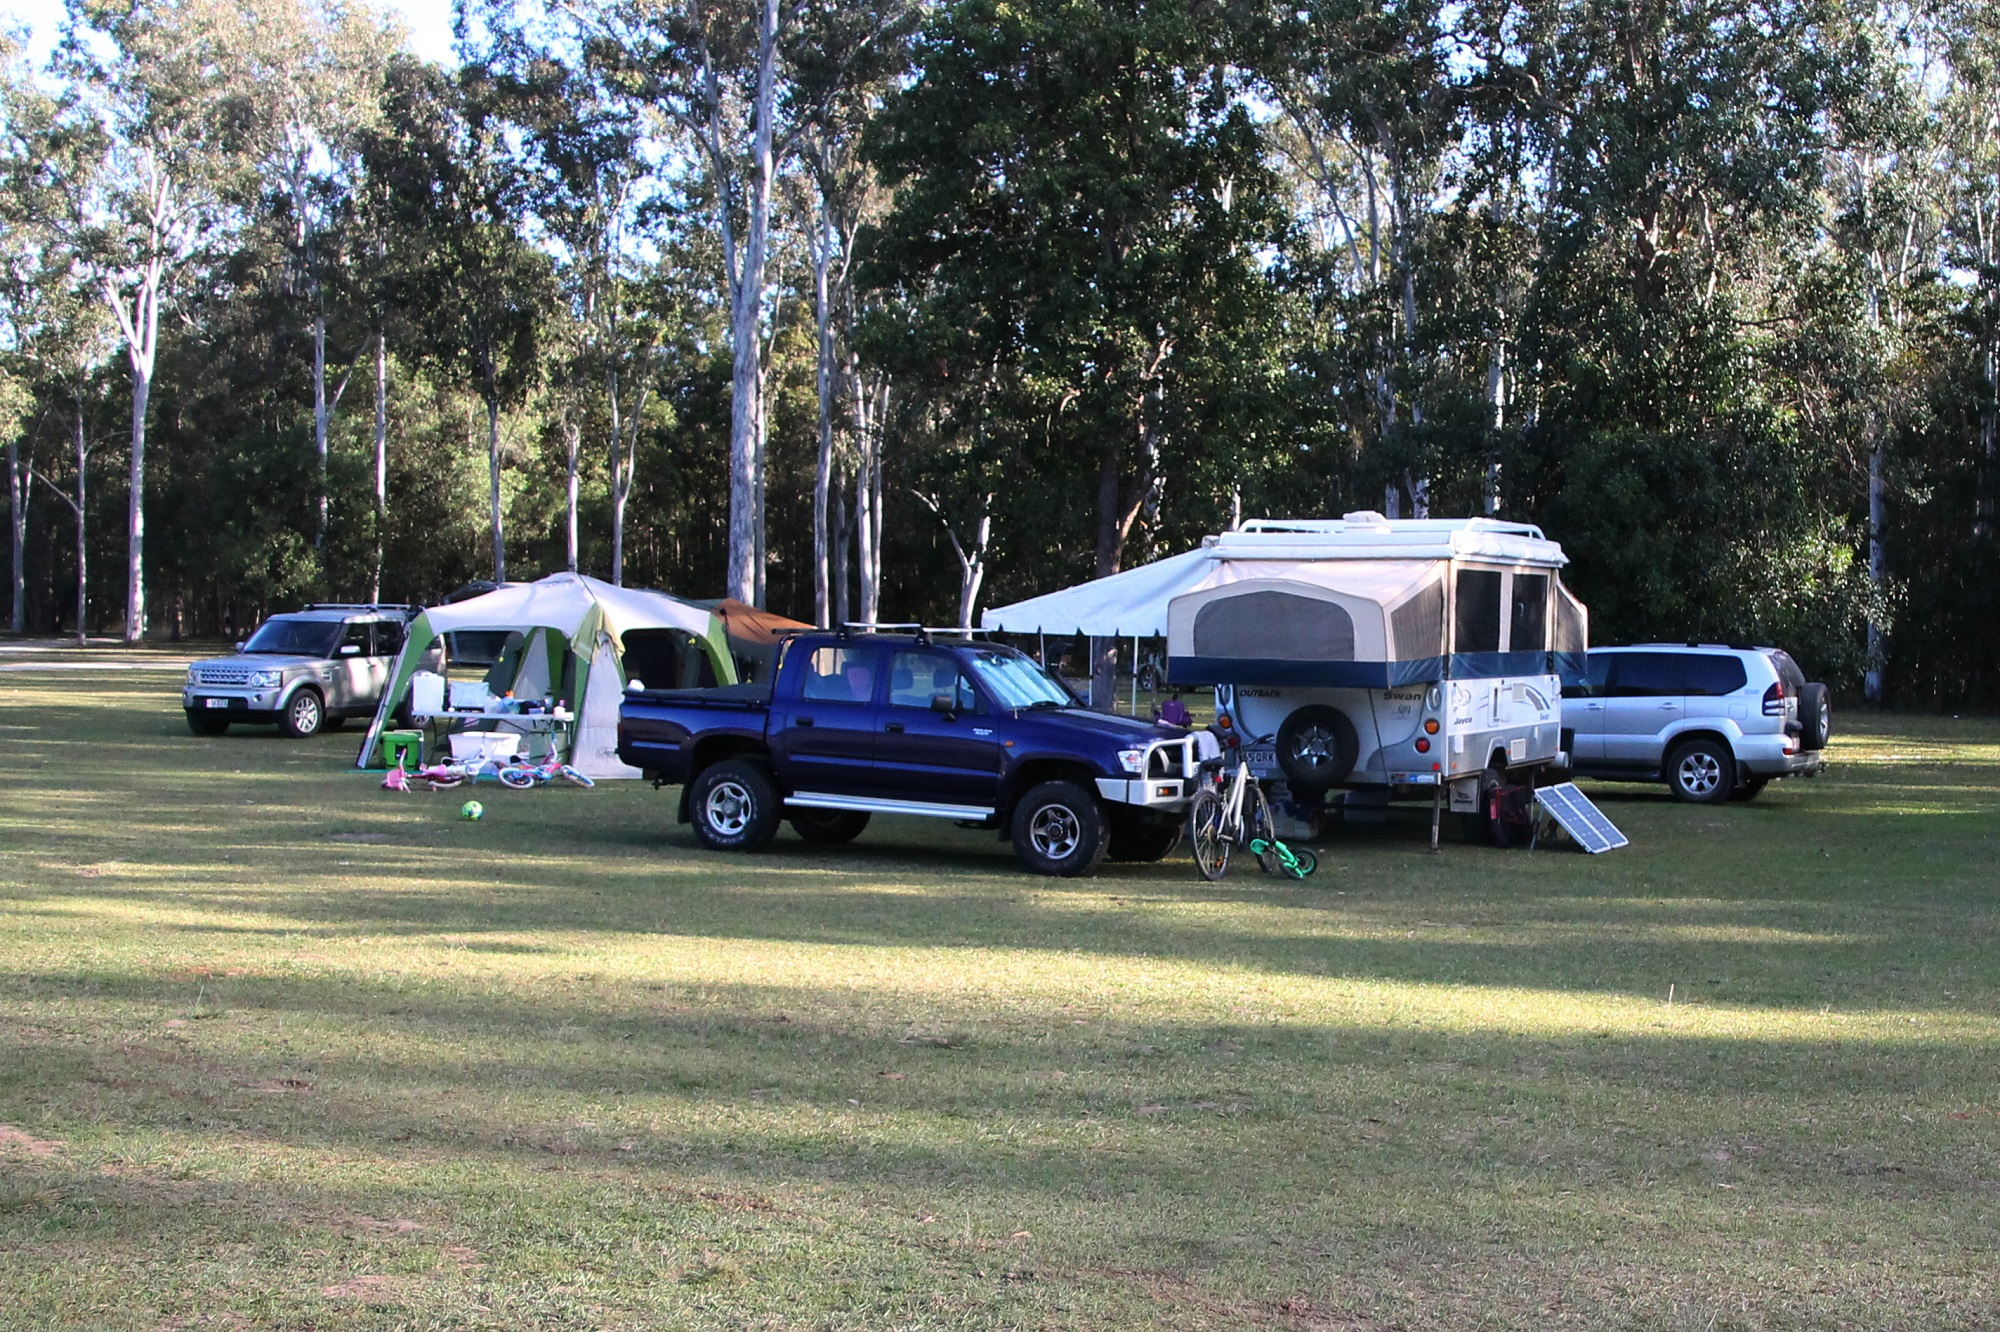 Served a dose of camping karma at Conondale and Kenilworth